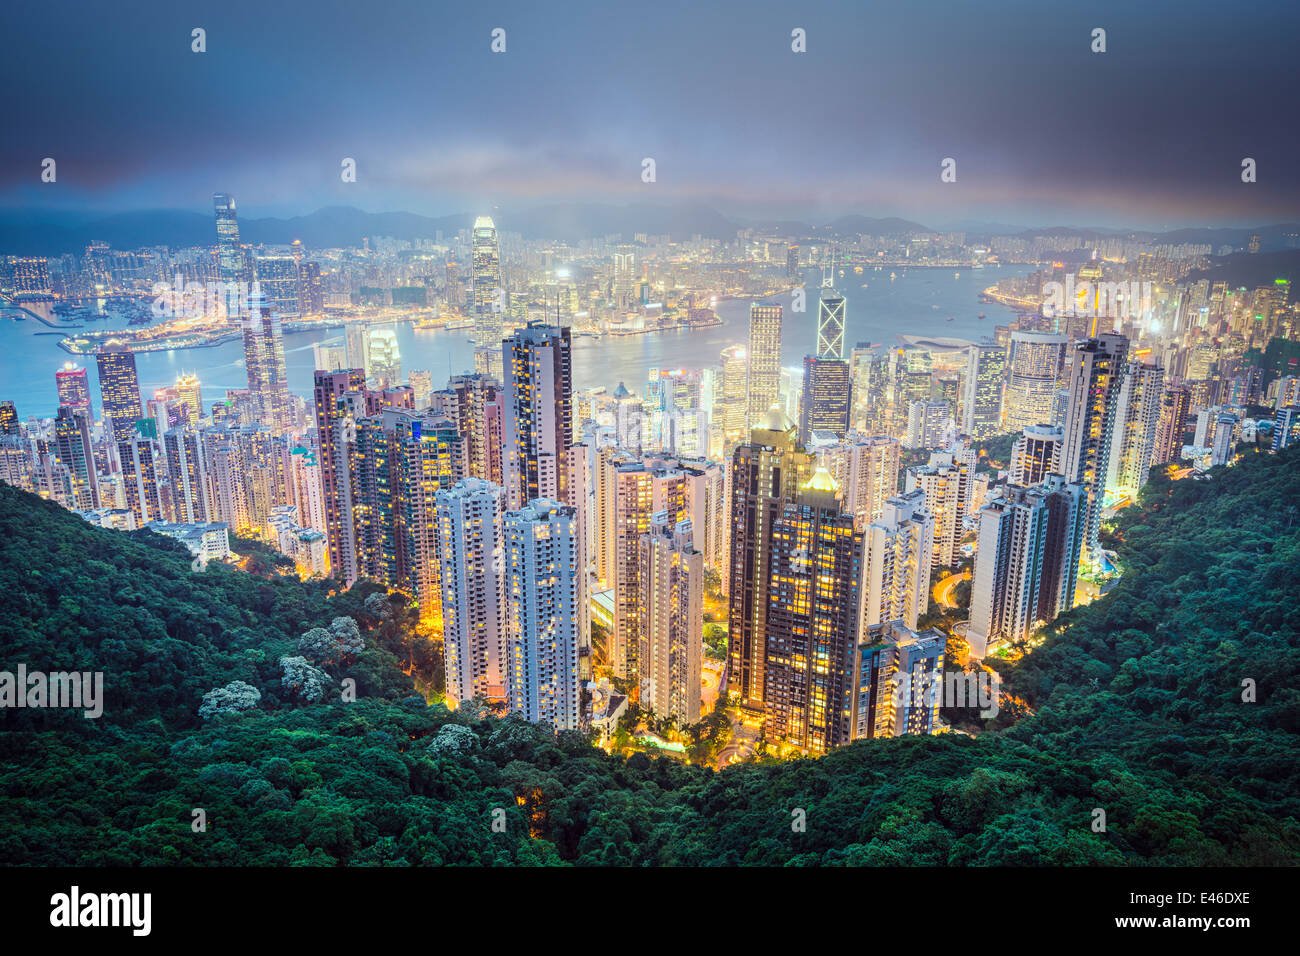 Hong Kong, Chine ville de Victoria Peak. Photo Stock